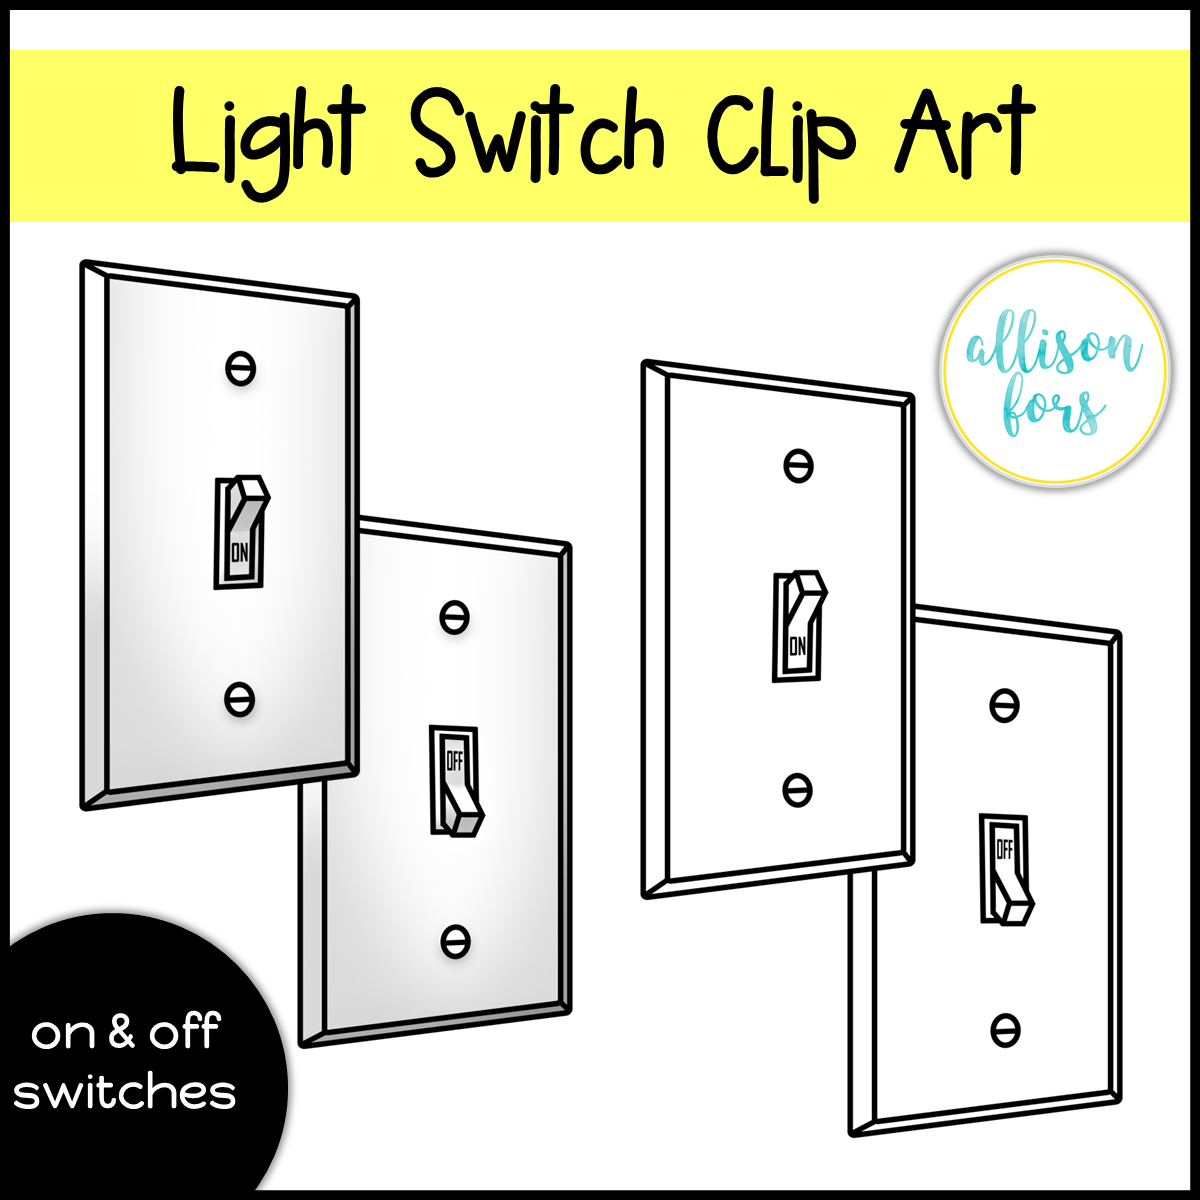 Light Switch Off Clipart Exclusive Light Switches Clip Art Allison Fors